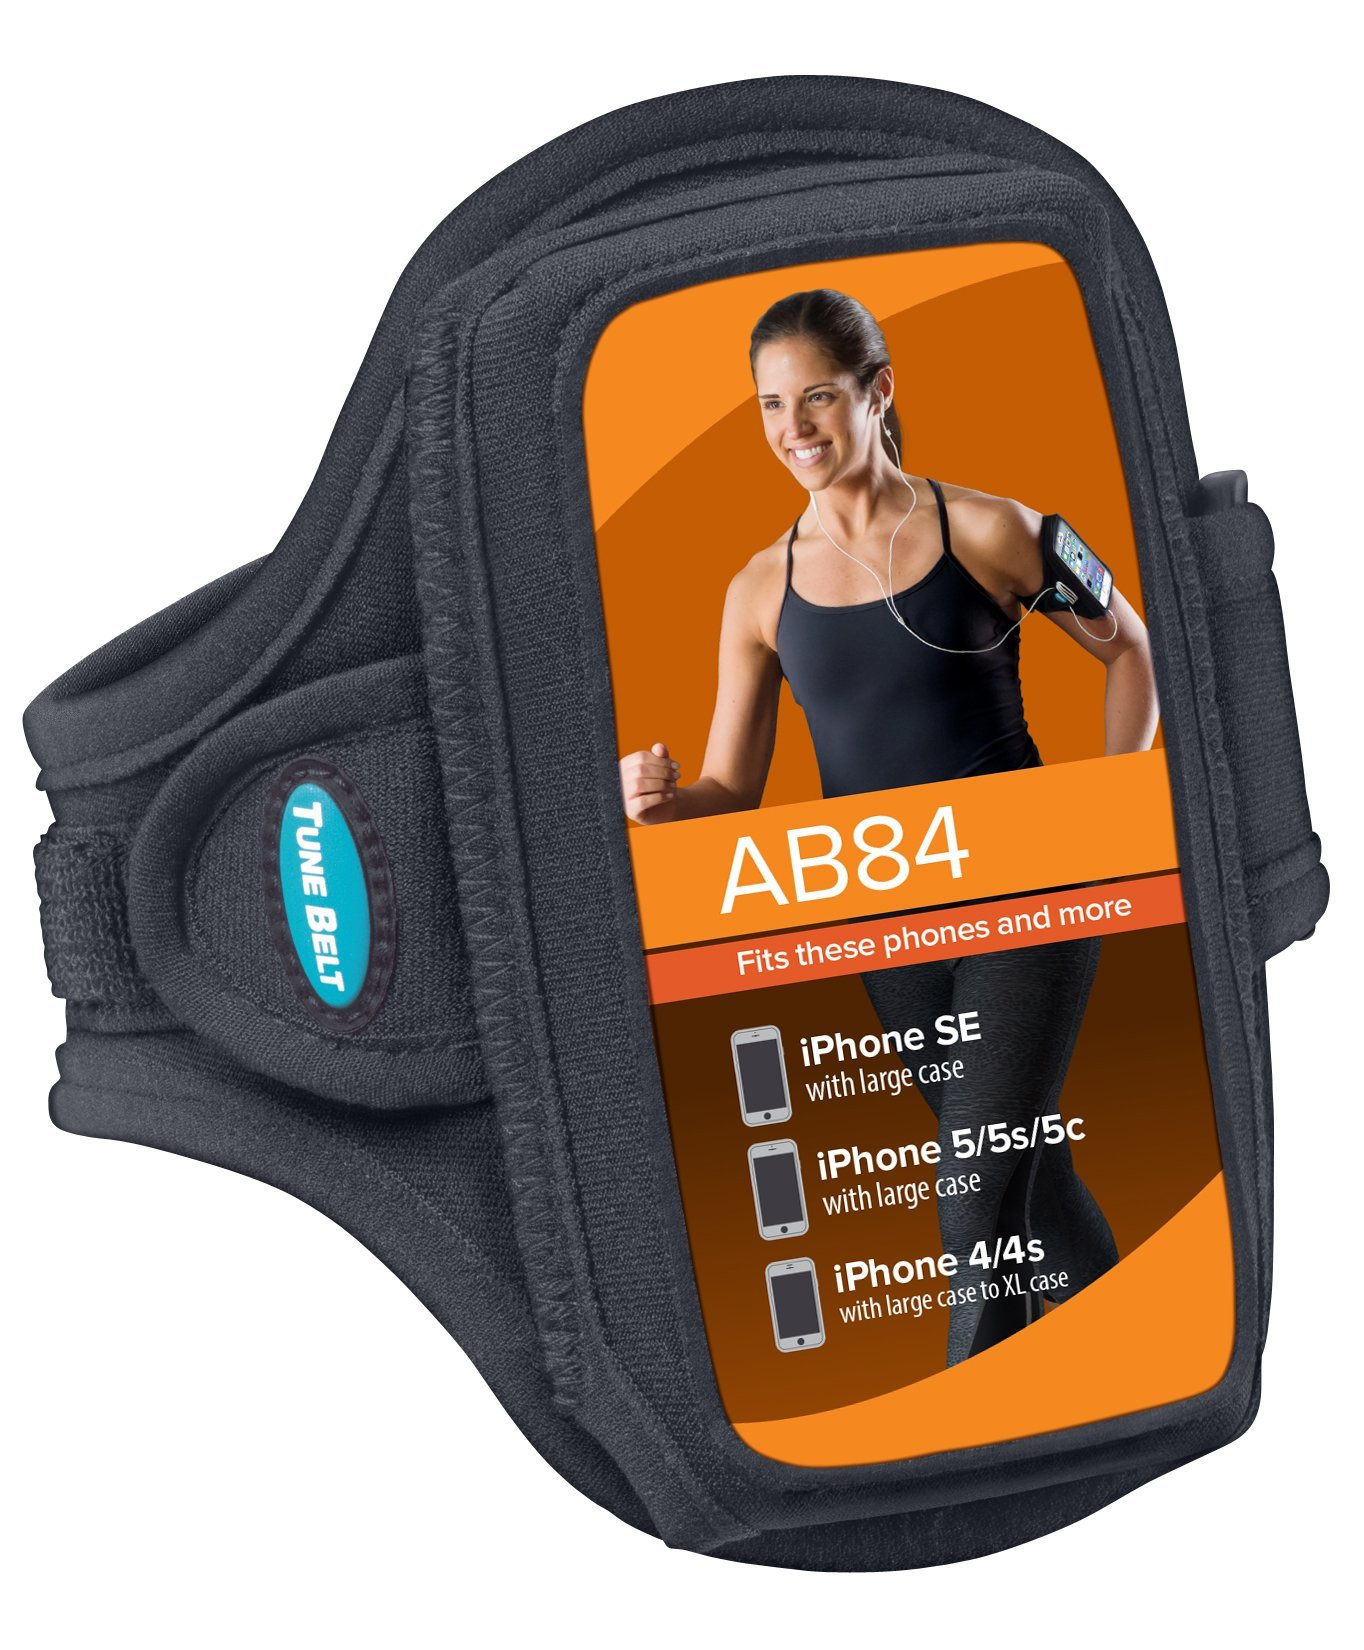 Armband for iPhone SE, 5, 5s, 5c, 4, 4S with OtterBox Defender, Commuter or Other Large Case – Great for Running & Working Out [Black] by Tune Belt (Image #2)